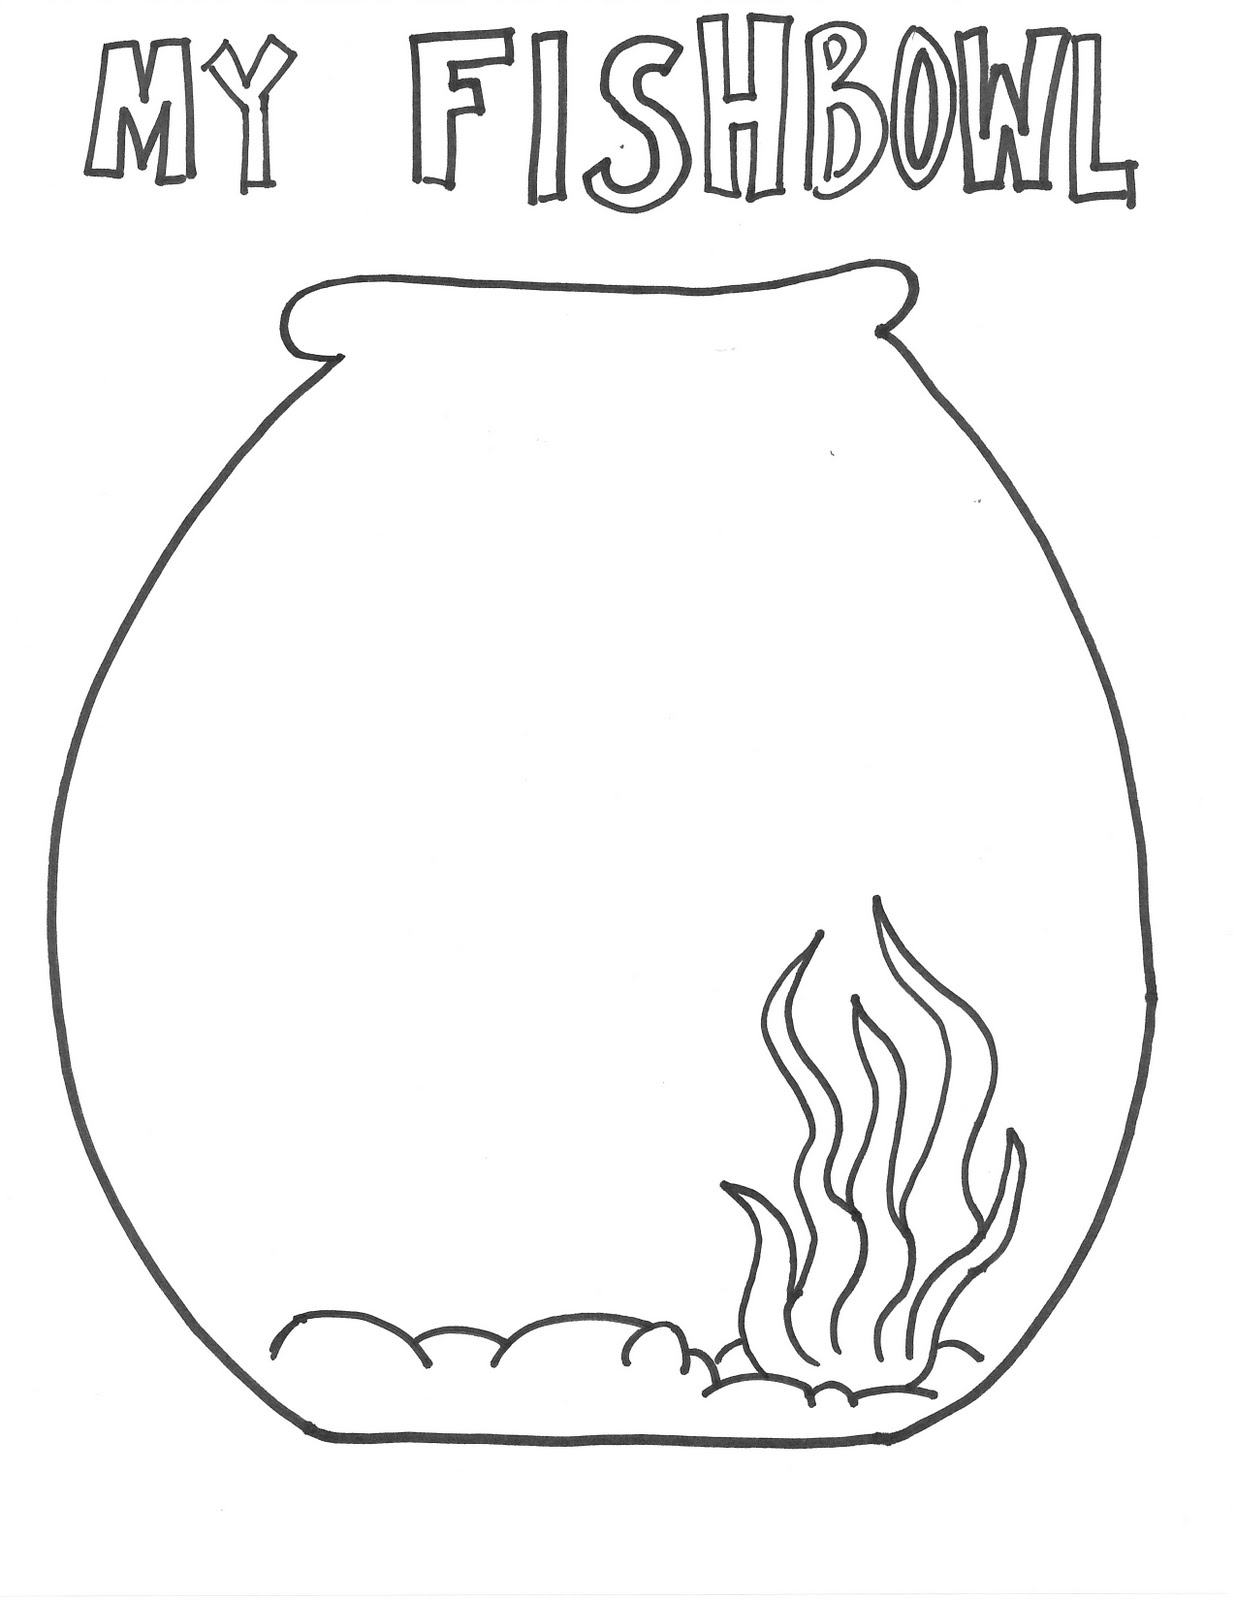 Free Fish Bowl Clipart Pictures